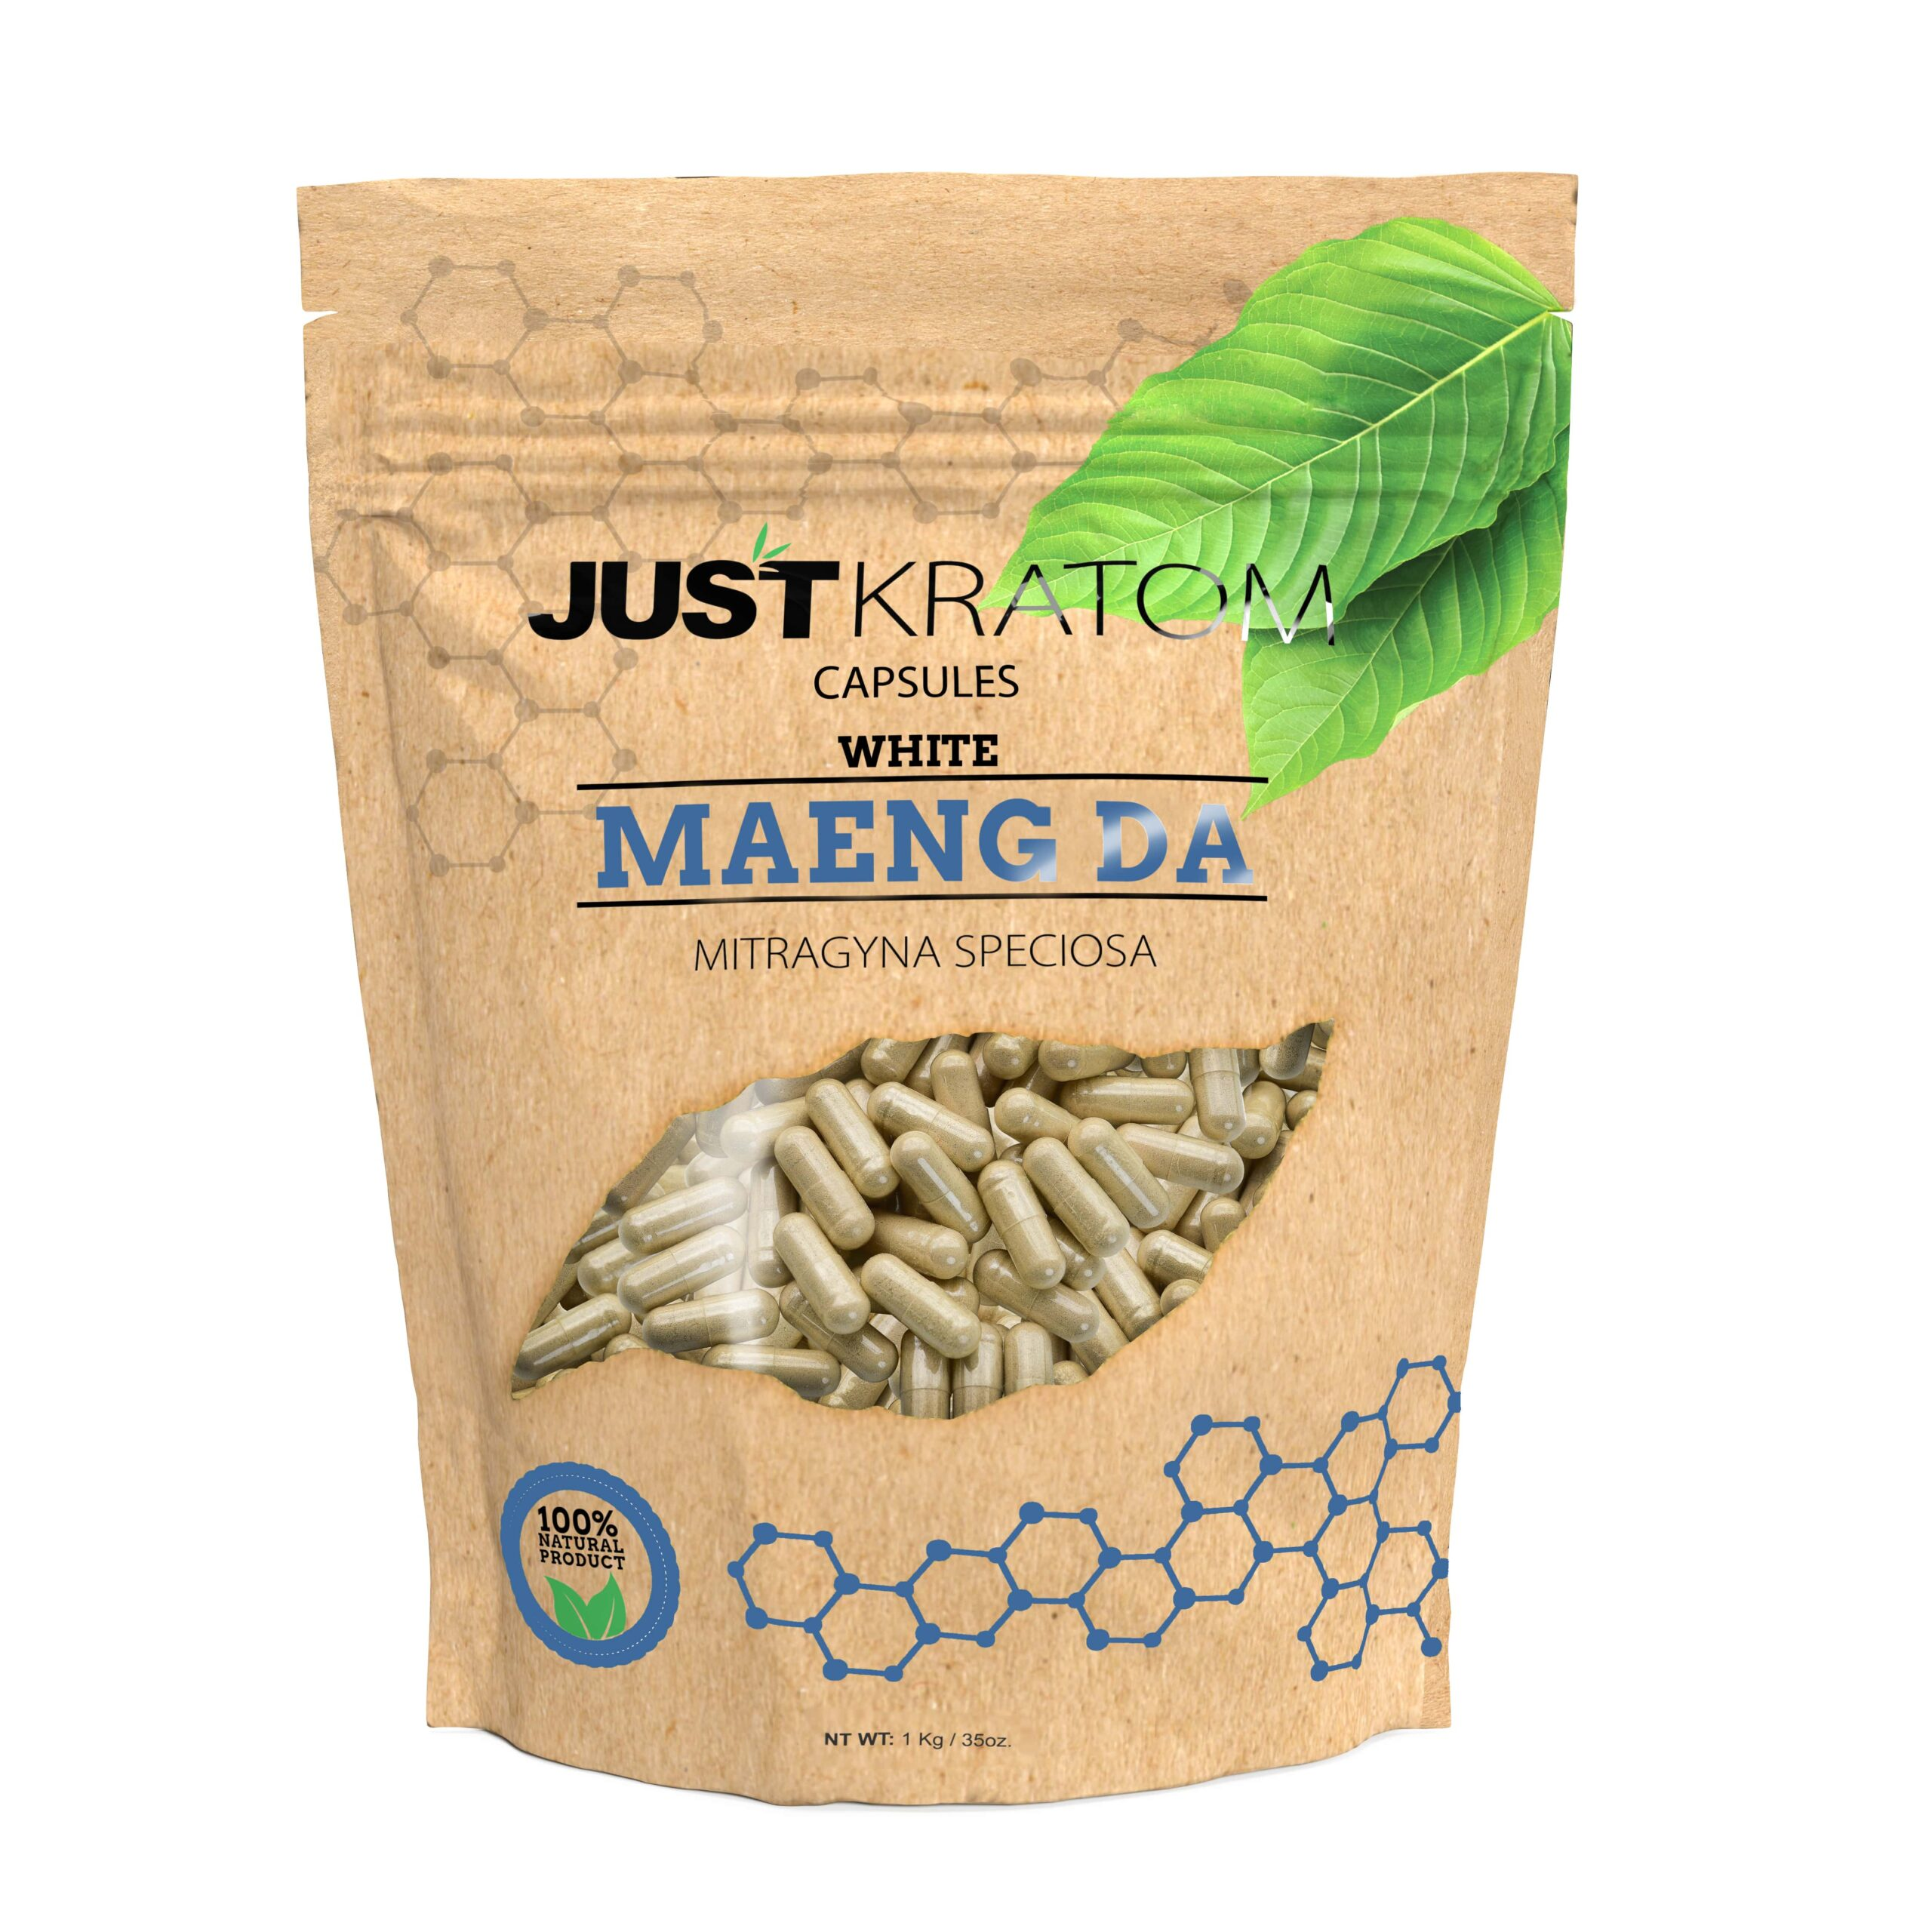 Where Can You Get Kratom